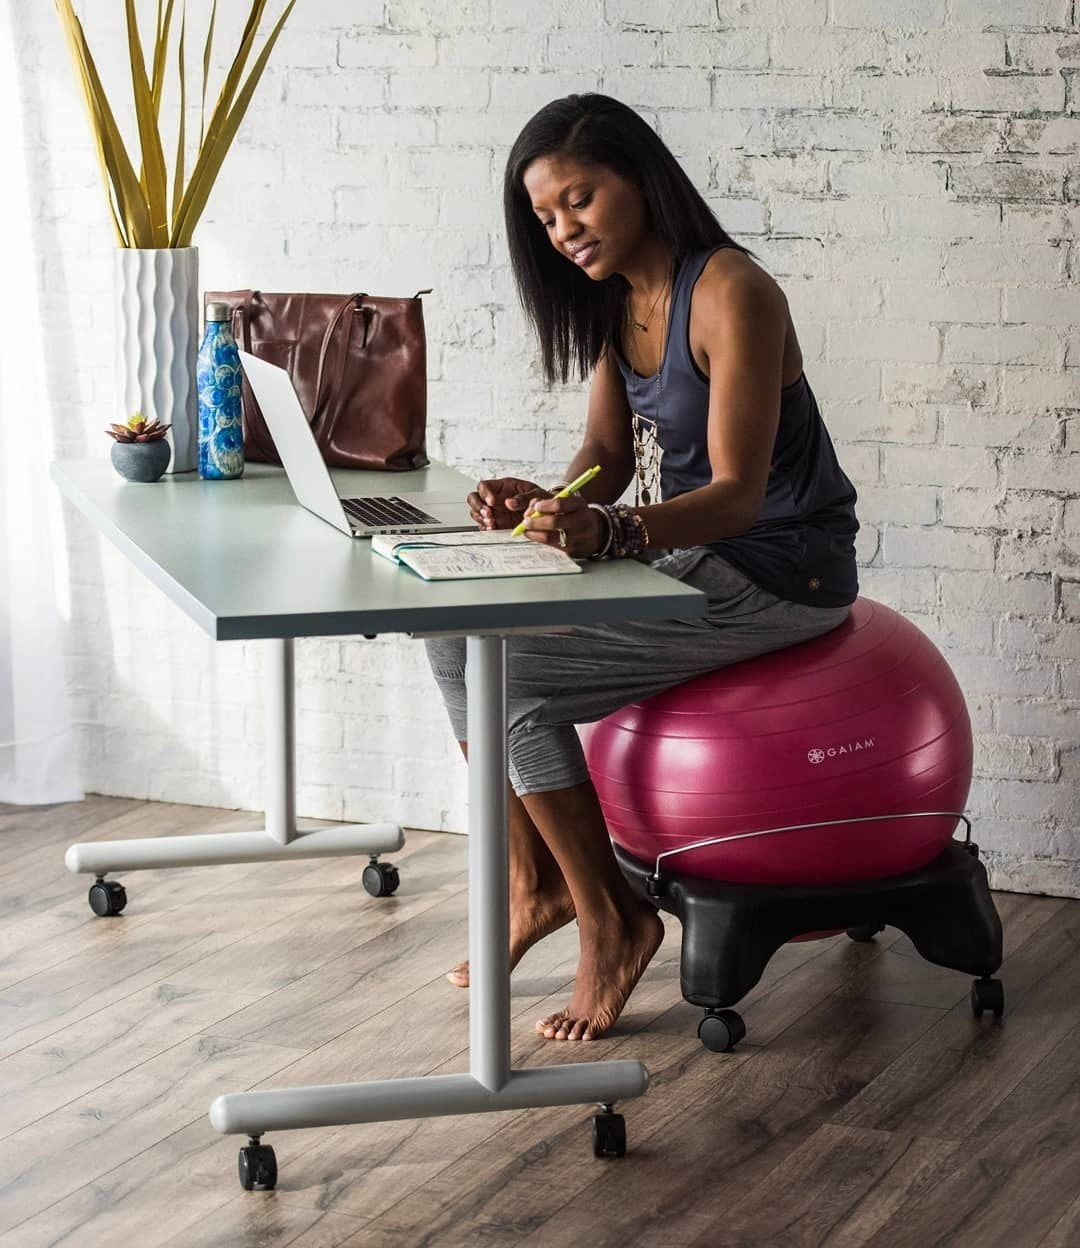 A person working a desk and sitting on a yoga ball. The ball is nestled in a short frame that has wheels on the bottom